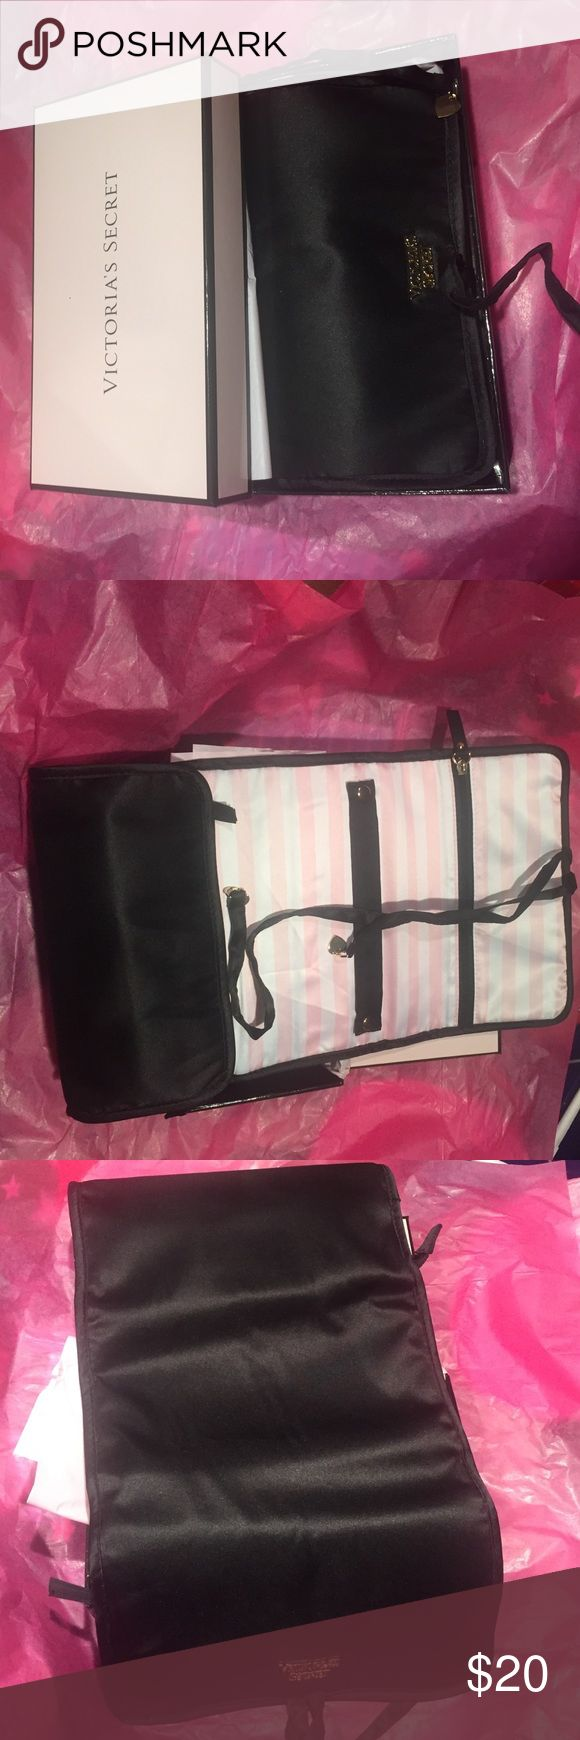 NWT Victoria secret roll up jewelry case NWT Victoria secret roll up jewelry case Victoria's Secret Bags Travel Bags